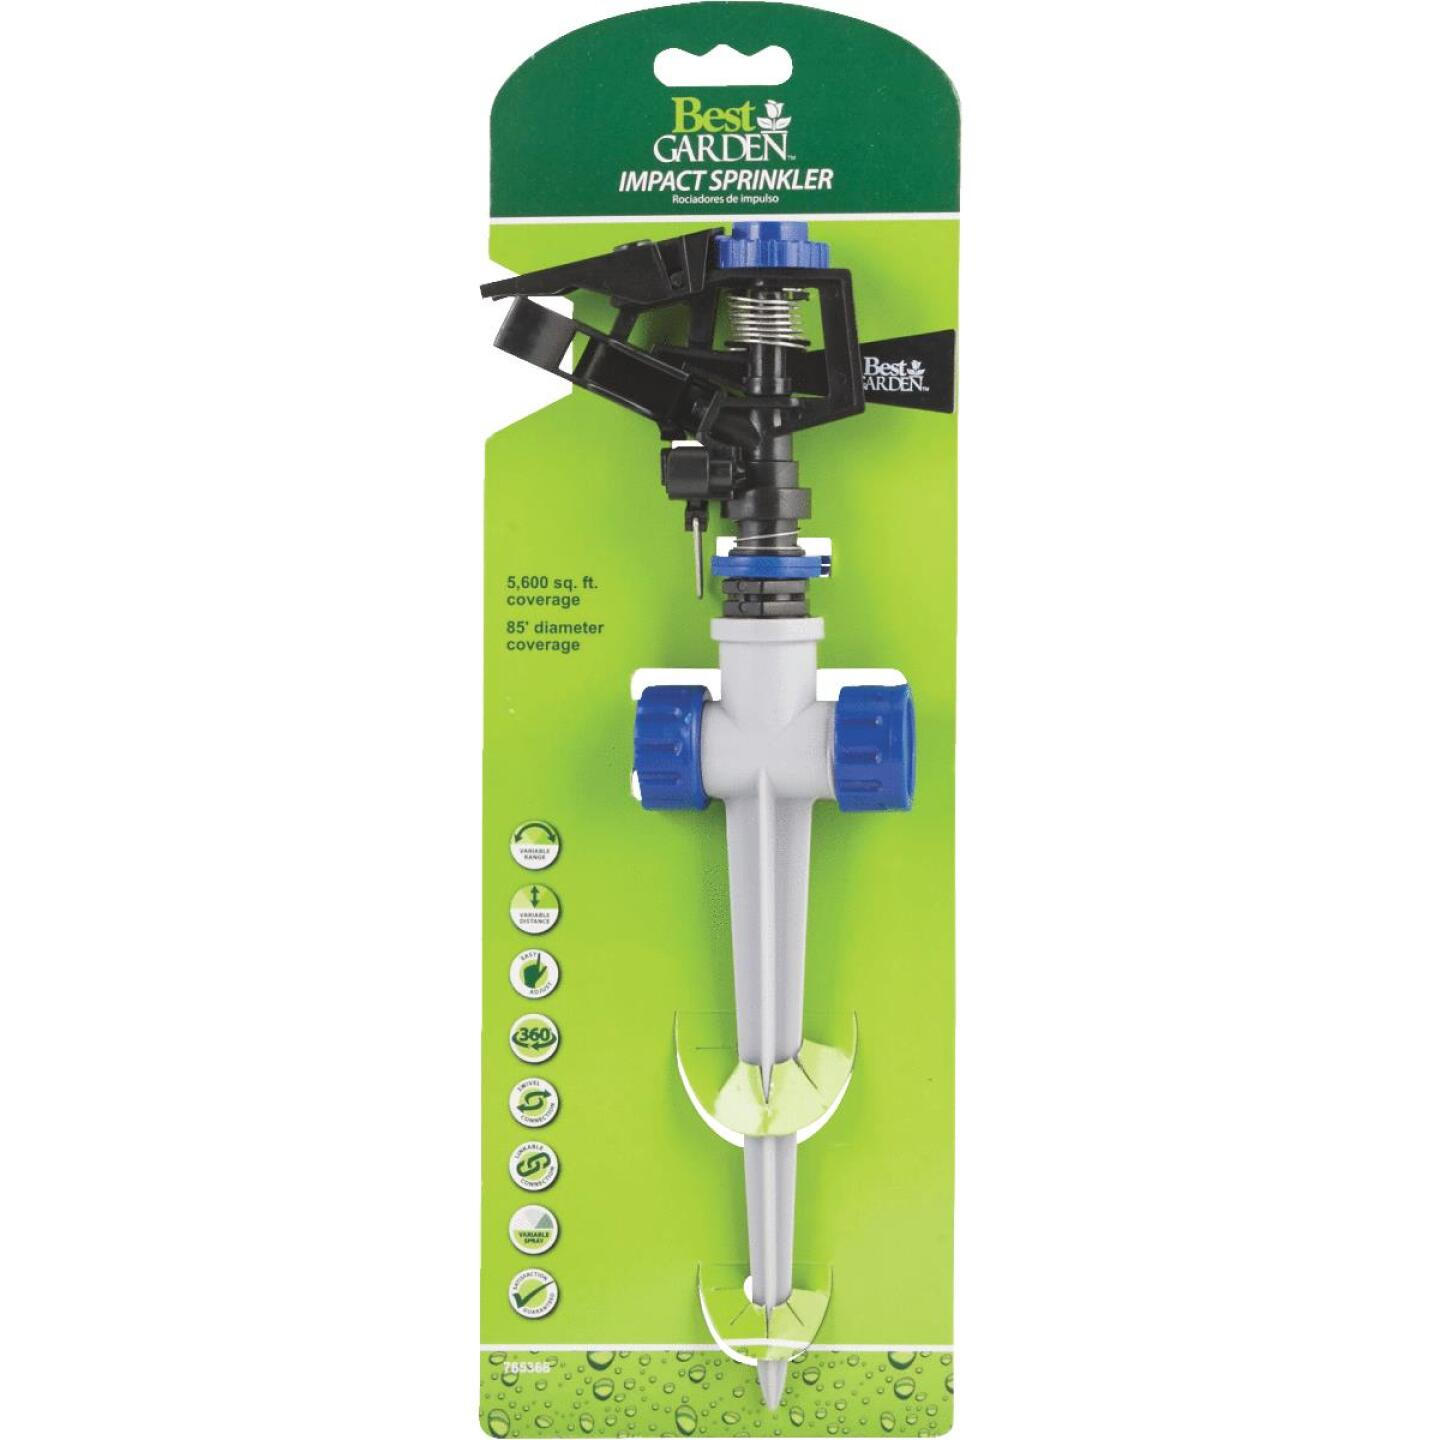 Best Garden Poly 5600 Sq. Ft. Spike Impulse Sprinkler Image 2